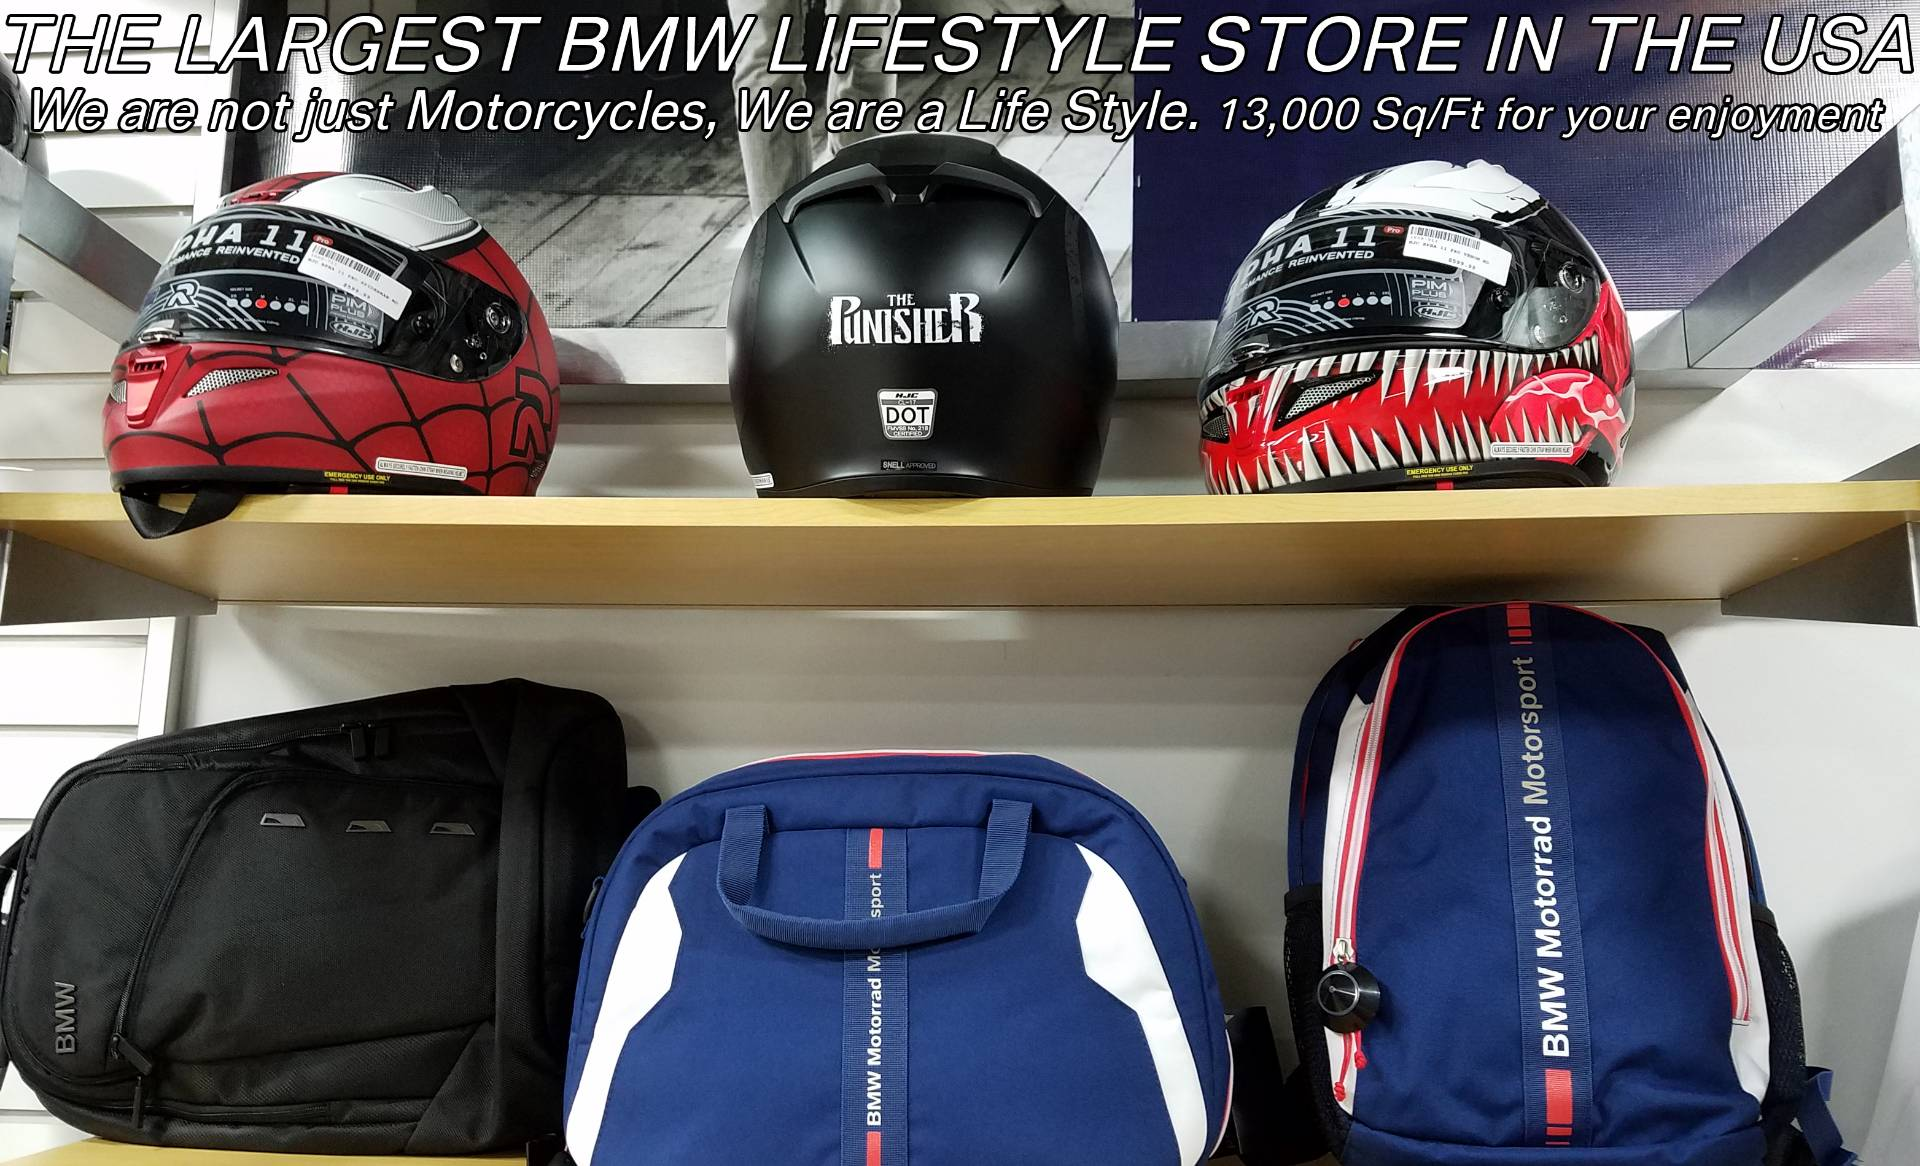 Used 2017 BMW R 1200 GSA for sale, Pre-owned BMW R1200GSA for sale, BMW Motorcycle Adventure, used BMW Adventure triple black, BMW Motorcycles of Miami, Motorcycles of Miami, Motorcycles Miami, New Motorcycles, Used Motorcycles, pre-owned. #BMWMotorcyclesOfMiami #MotorcyclesOfMiami - Photo 35